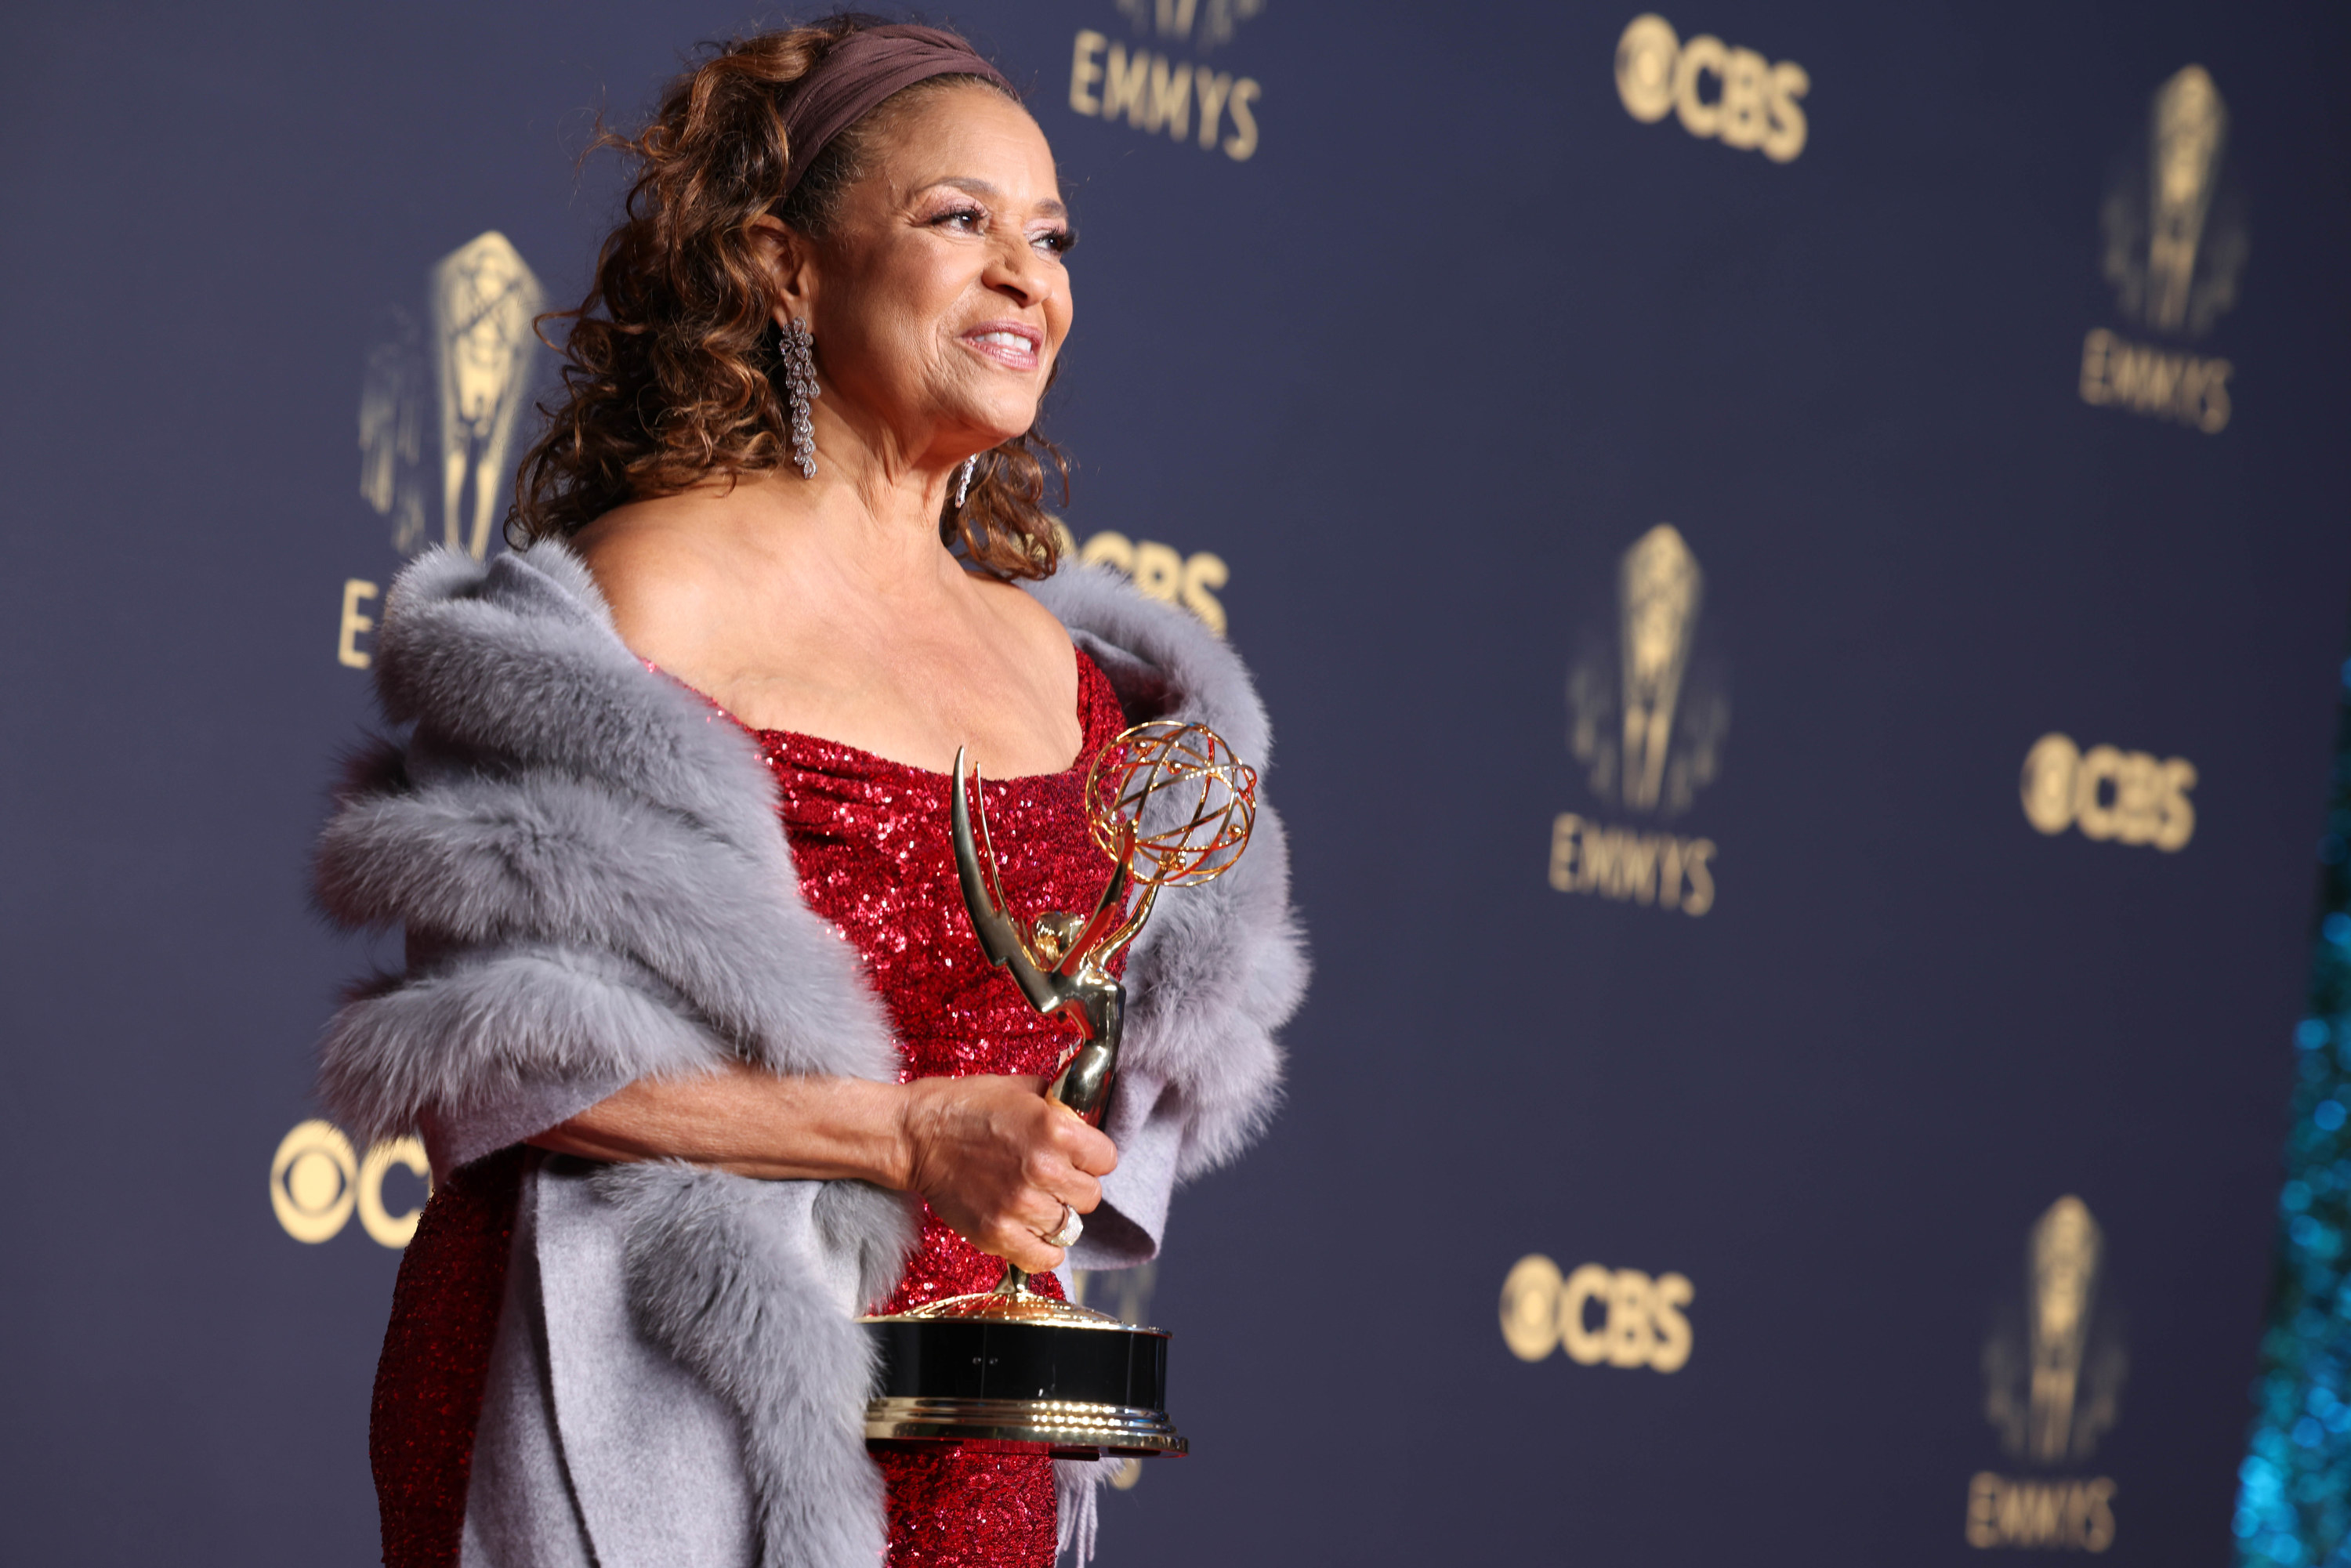 Debbie Allen at the Emmys holding the Governor's Award